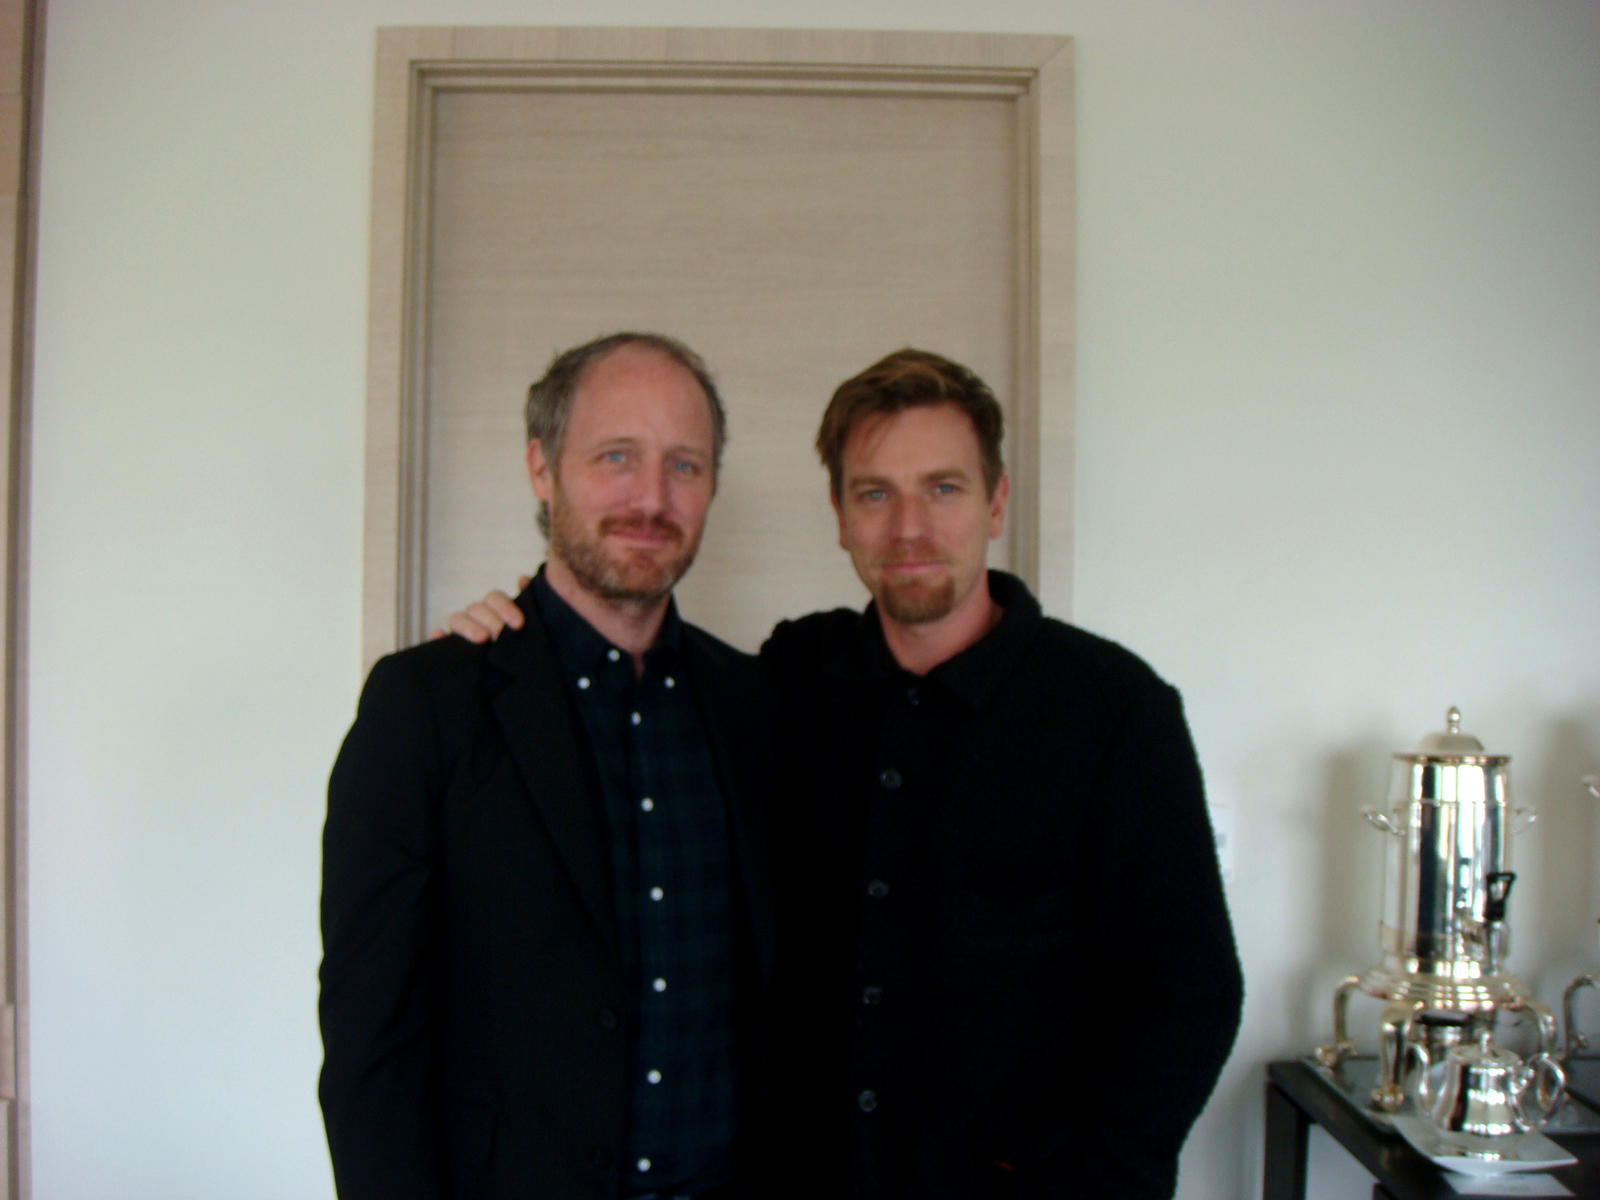 Mike Mills and Ewan McGregor at the St. Regis Hotel in San Francisco, where the interview took place.